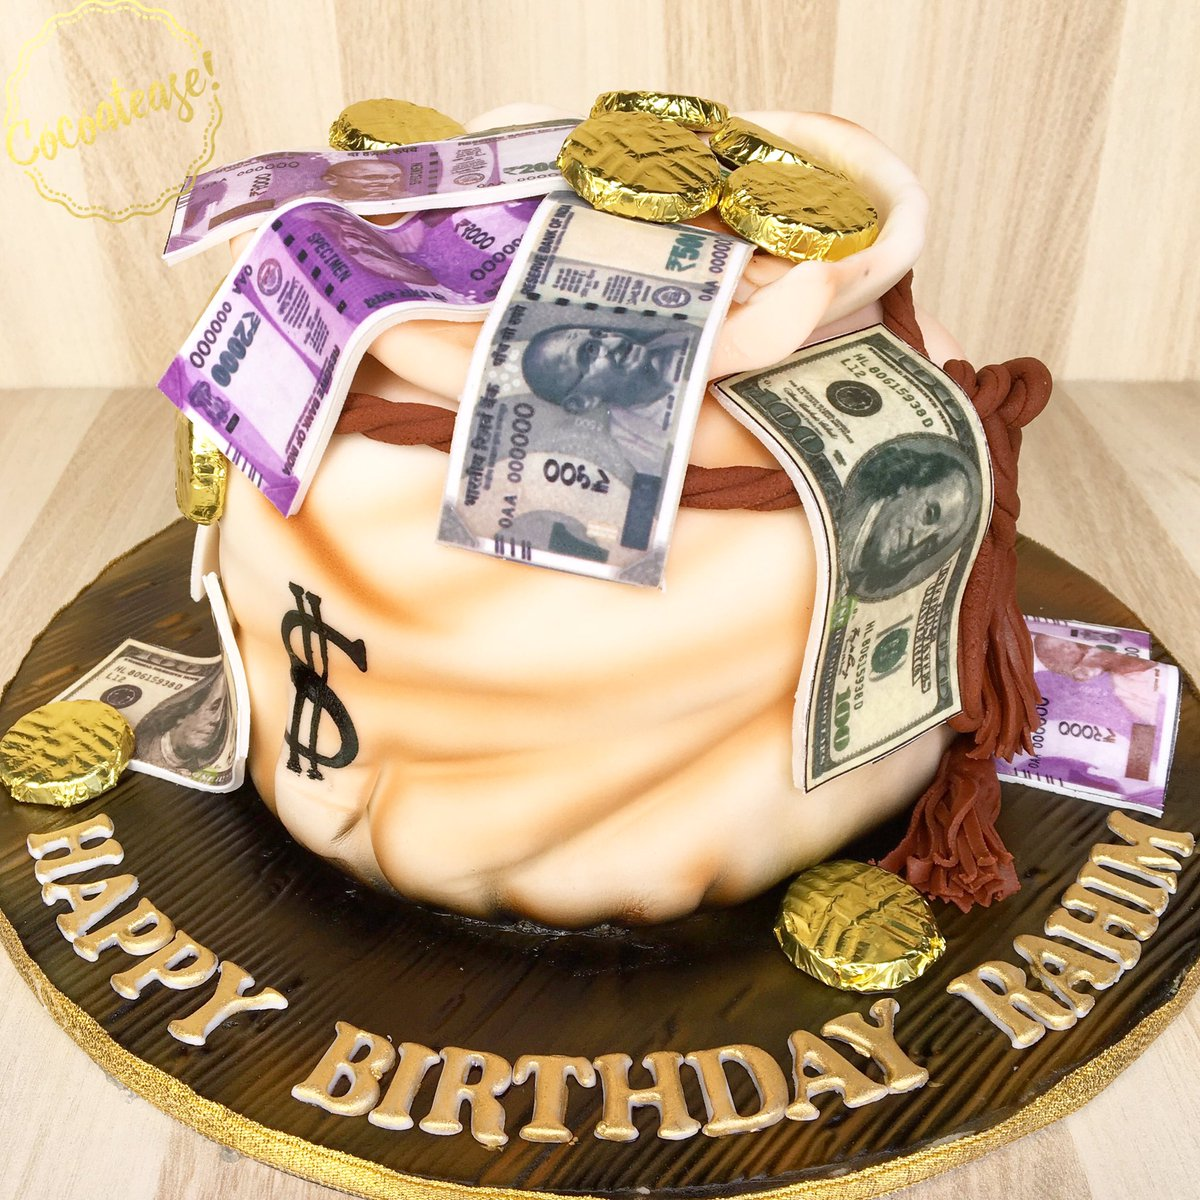 Tremendous Cocoatease On Twitter The Goal Isnt More Money It Is Living Birthday Cards Printable Riciscafe Filternl